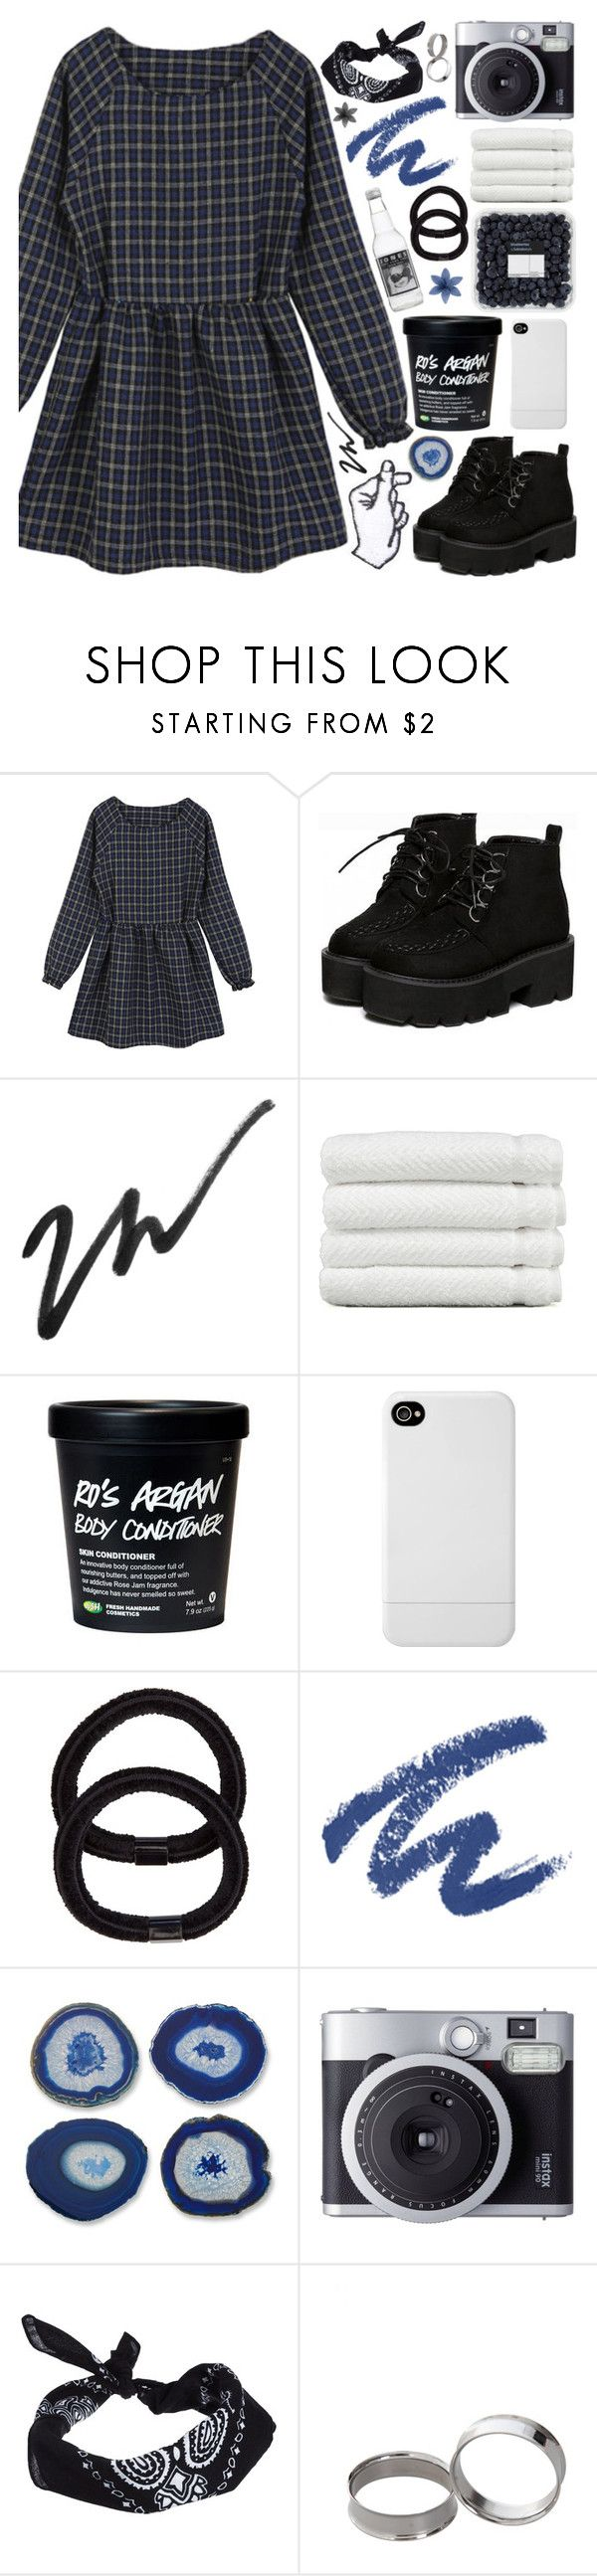 """""""[🔪] you'll never burn me out"""" by korekara ❤ liked on Polyvore featuring Linum Home Textiles, Incase, John Lewis, Revlon, Fujifilm, ASOS and Hot Topic"""